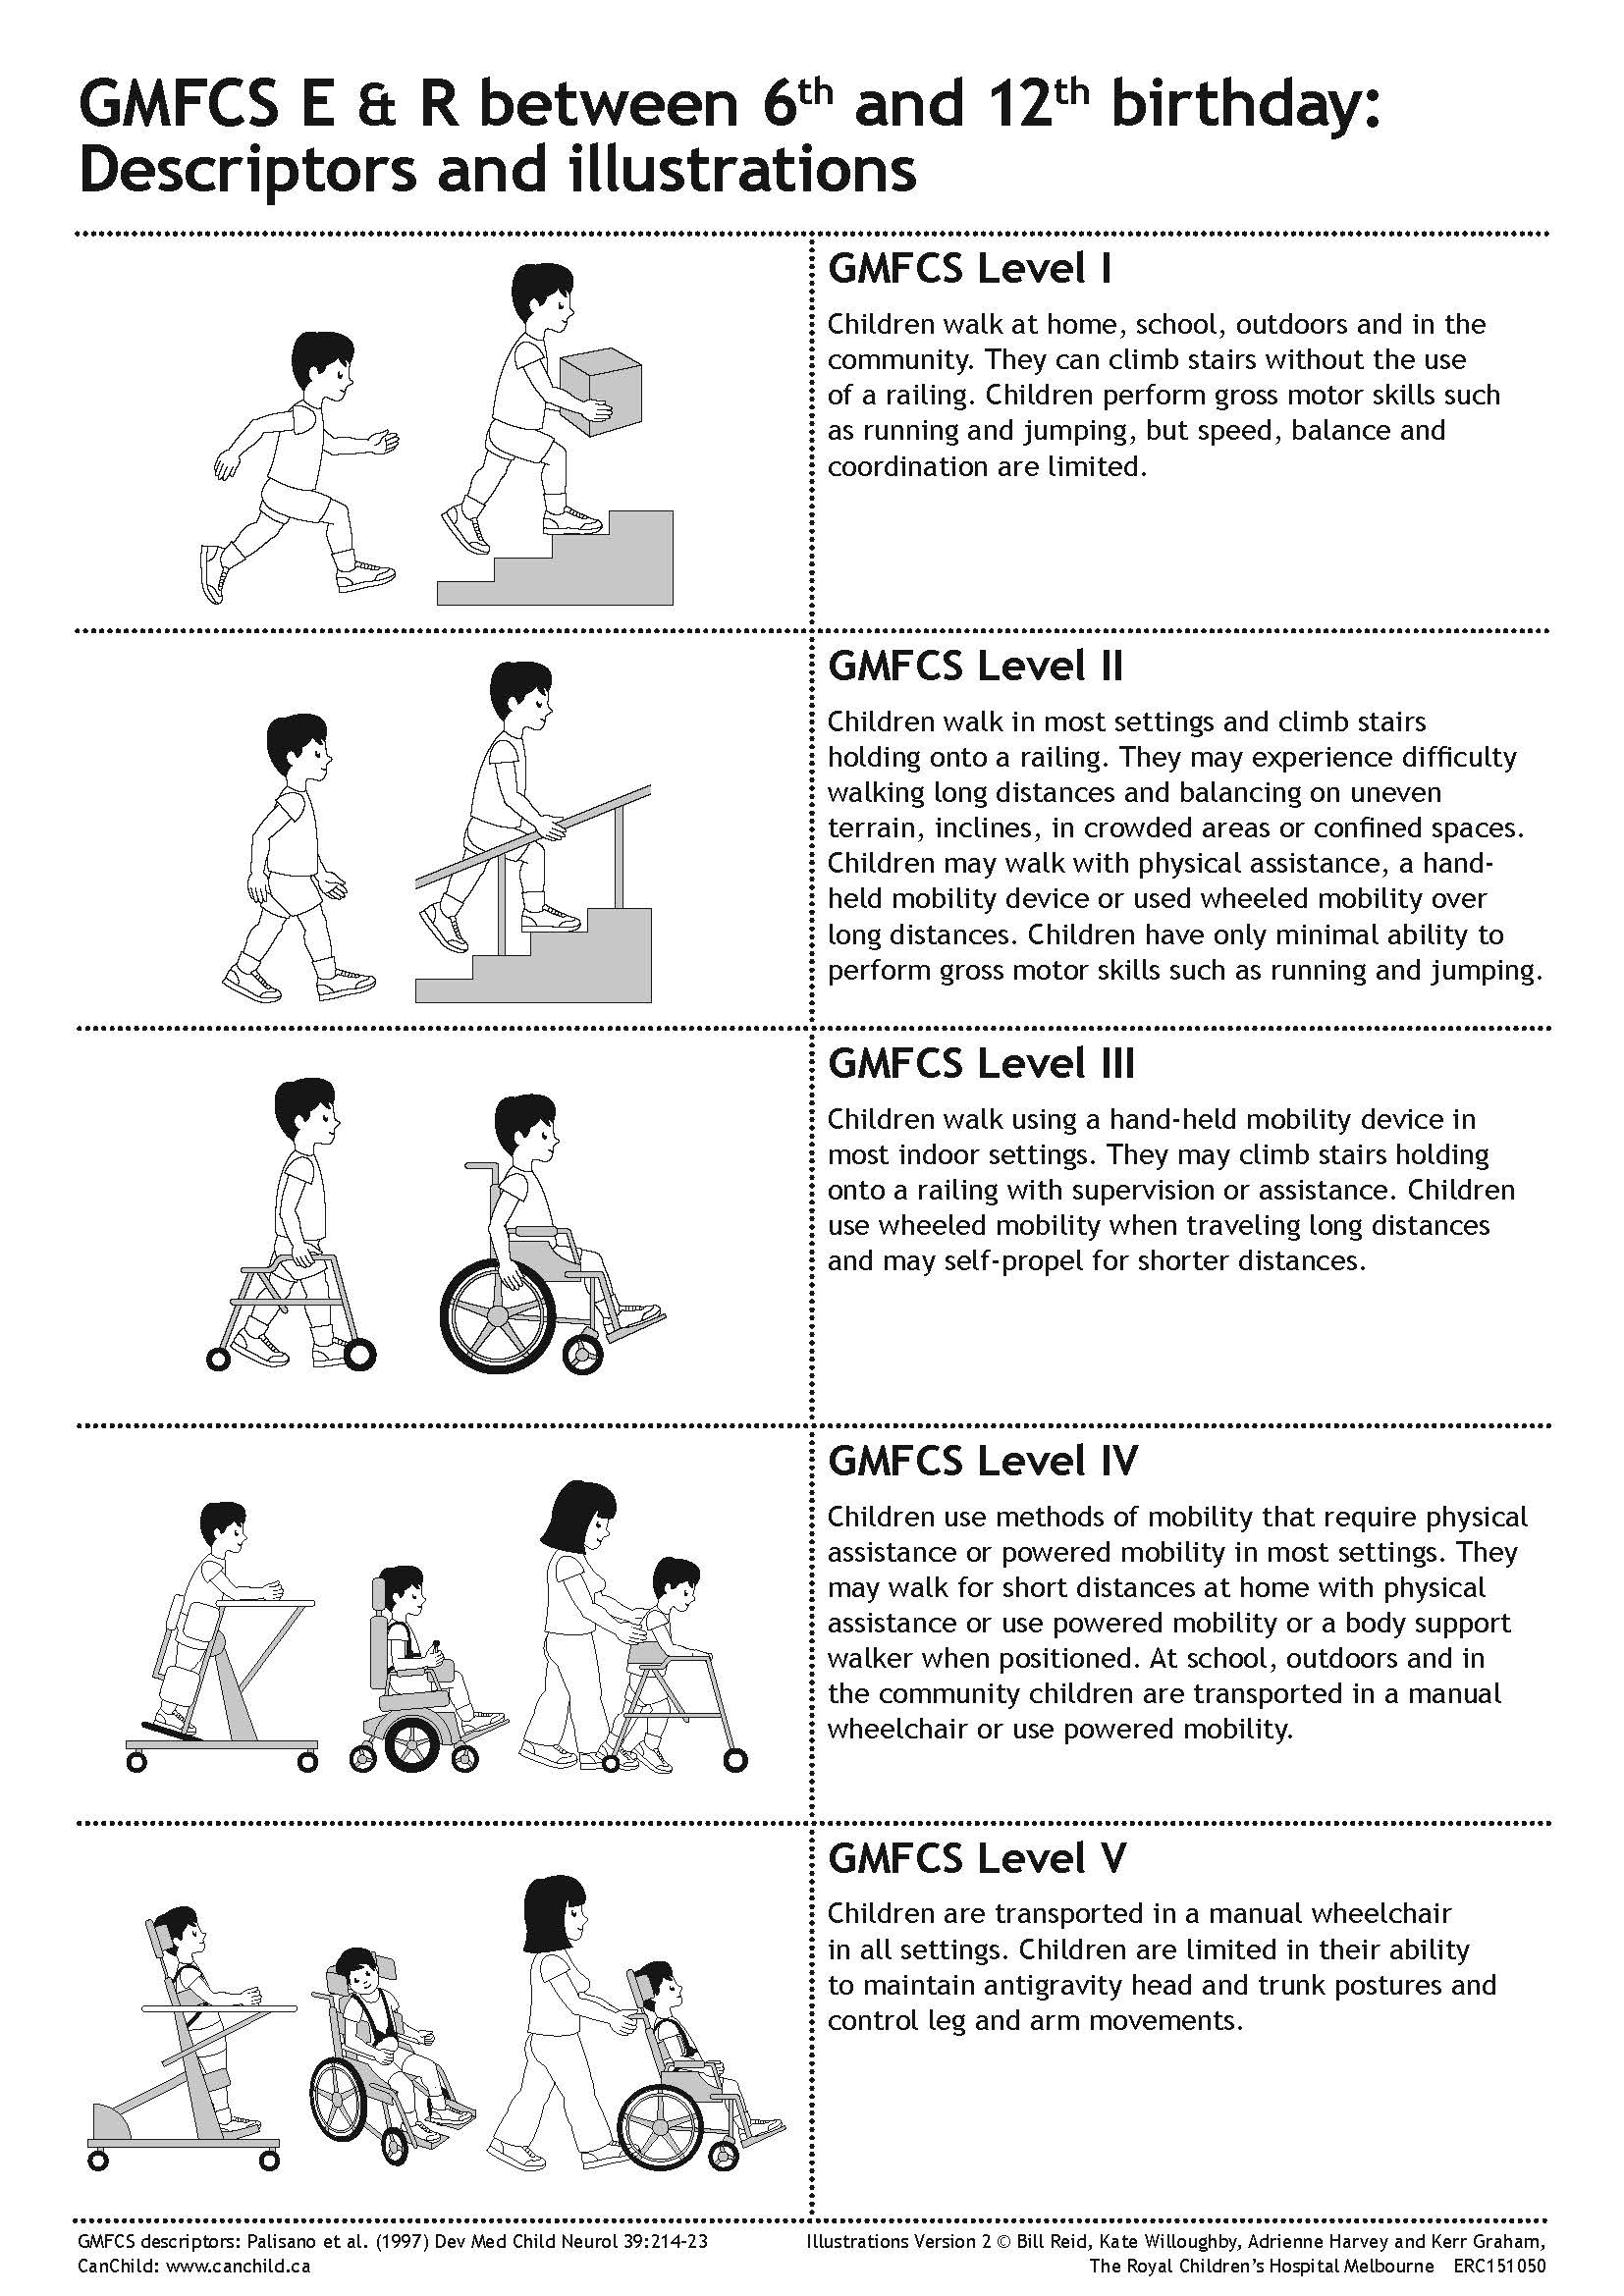 GMFCS_English_Illustrations_V2_Page_1